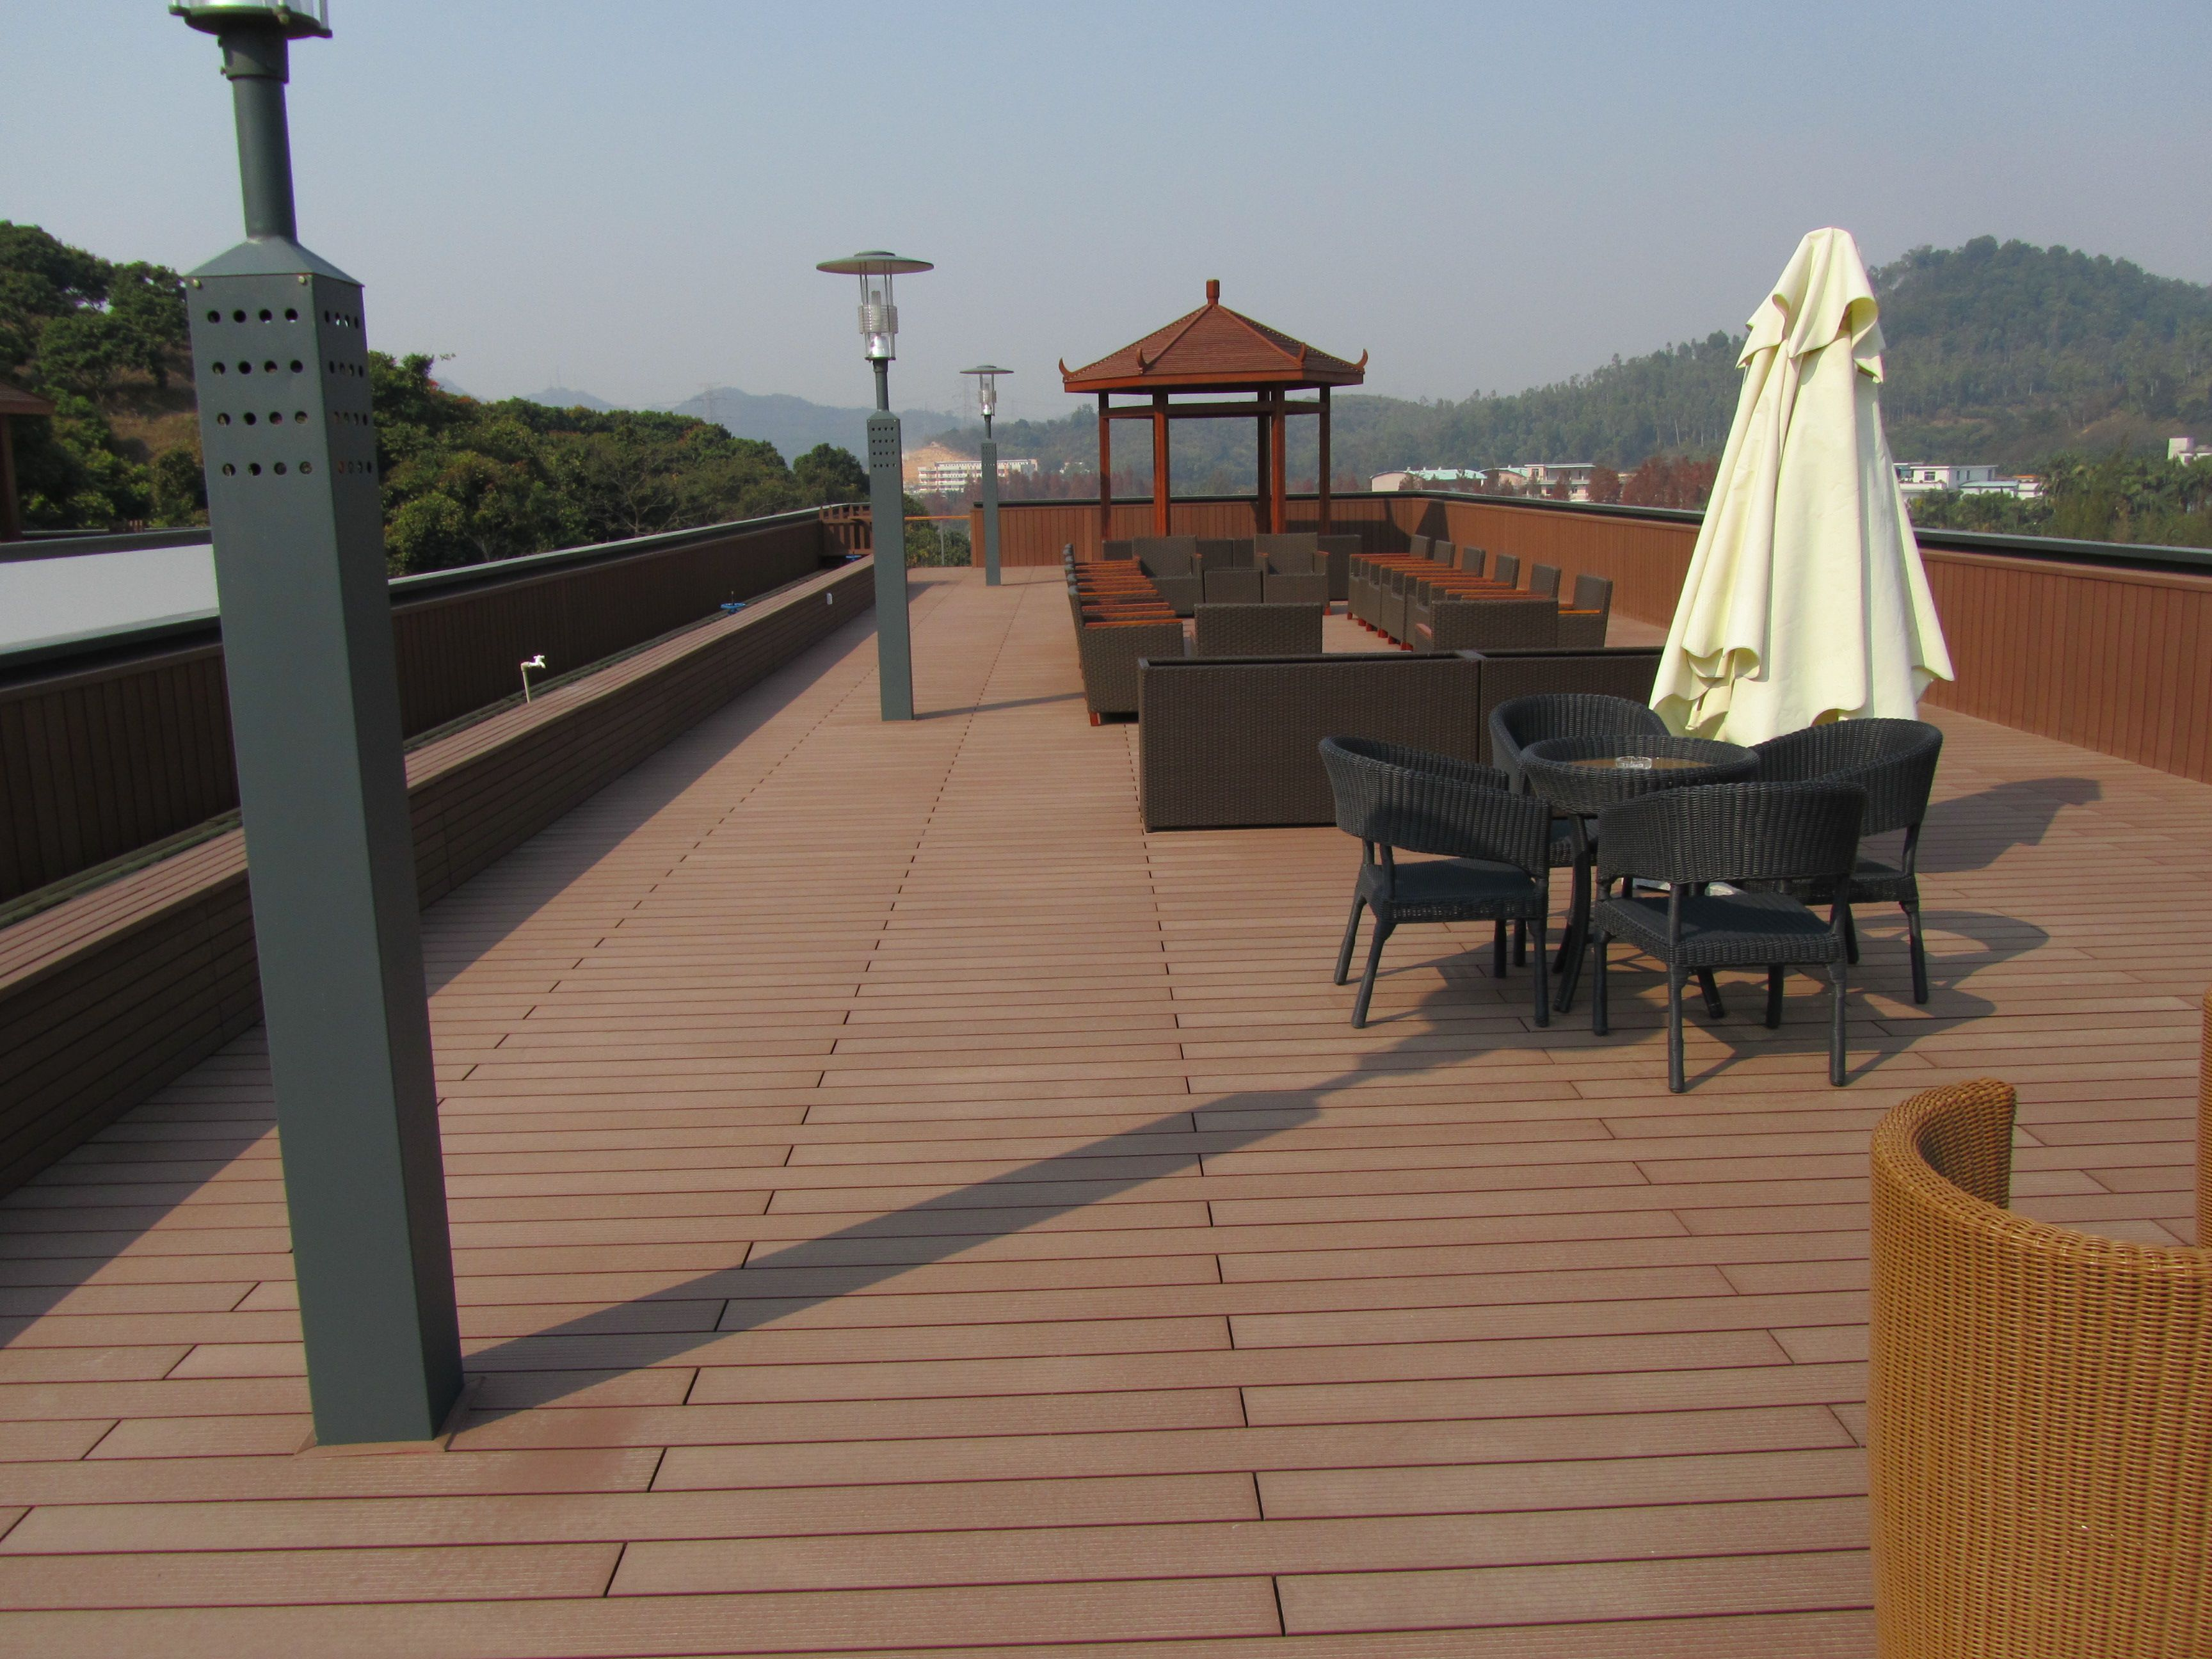 Wood Plastic Composite Decking Outdoor White Deck Boards In Qatar Boat Floor Replacement Products Outdoor Outdoor Deck Outdoor Wood